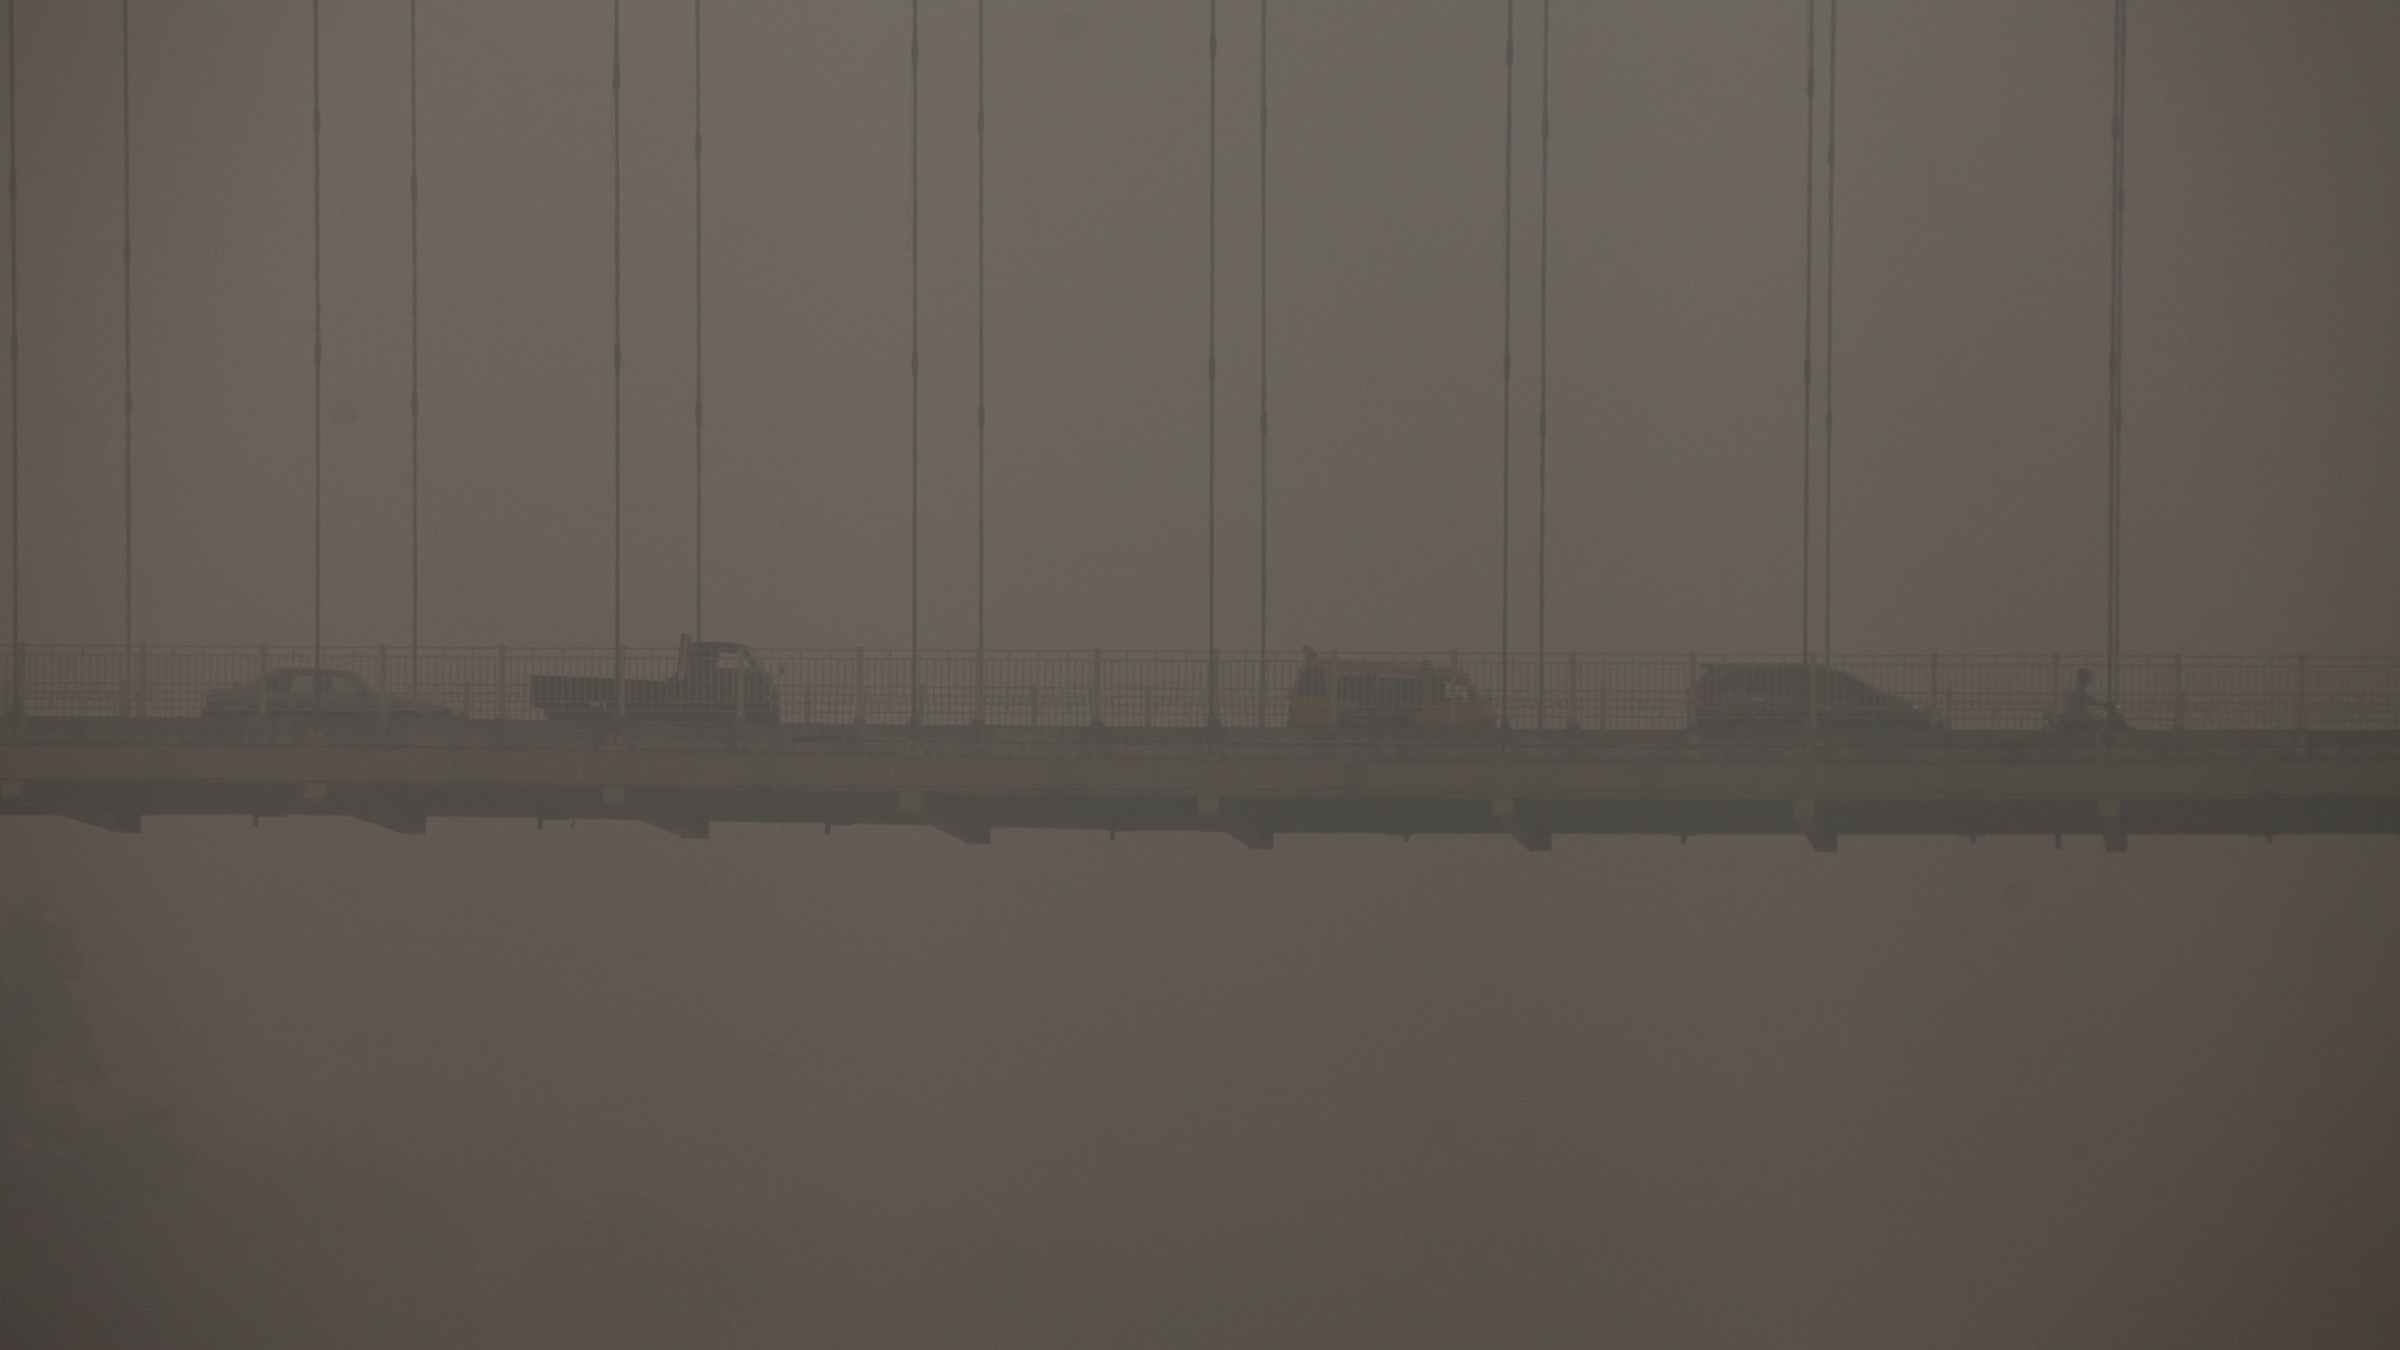 Vehicles drive on a bridge over the Siak river in the haze covered city of Pekanbaru, Riau Province on the Indonesian island of Sumatra